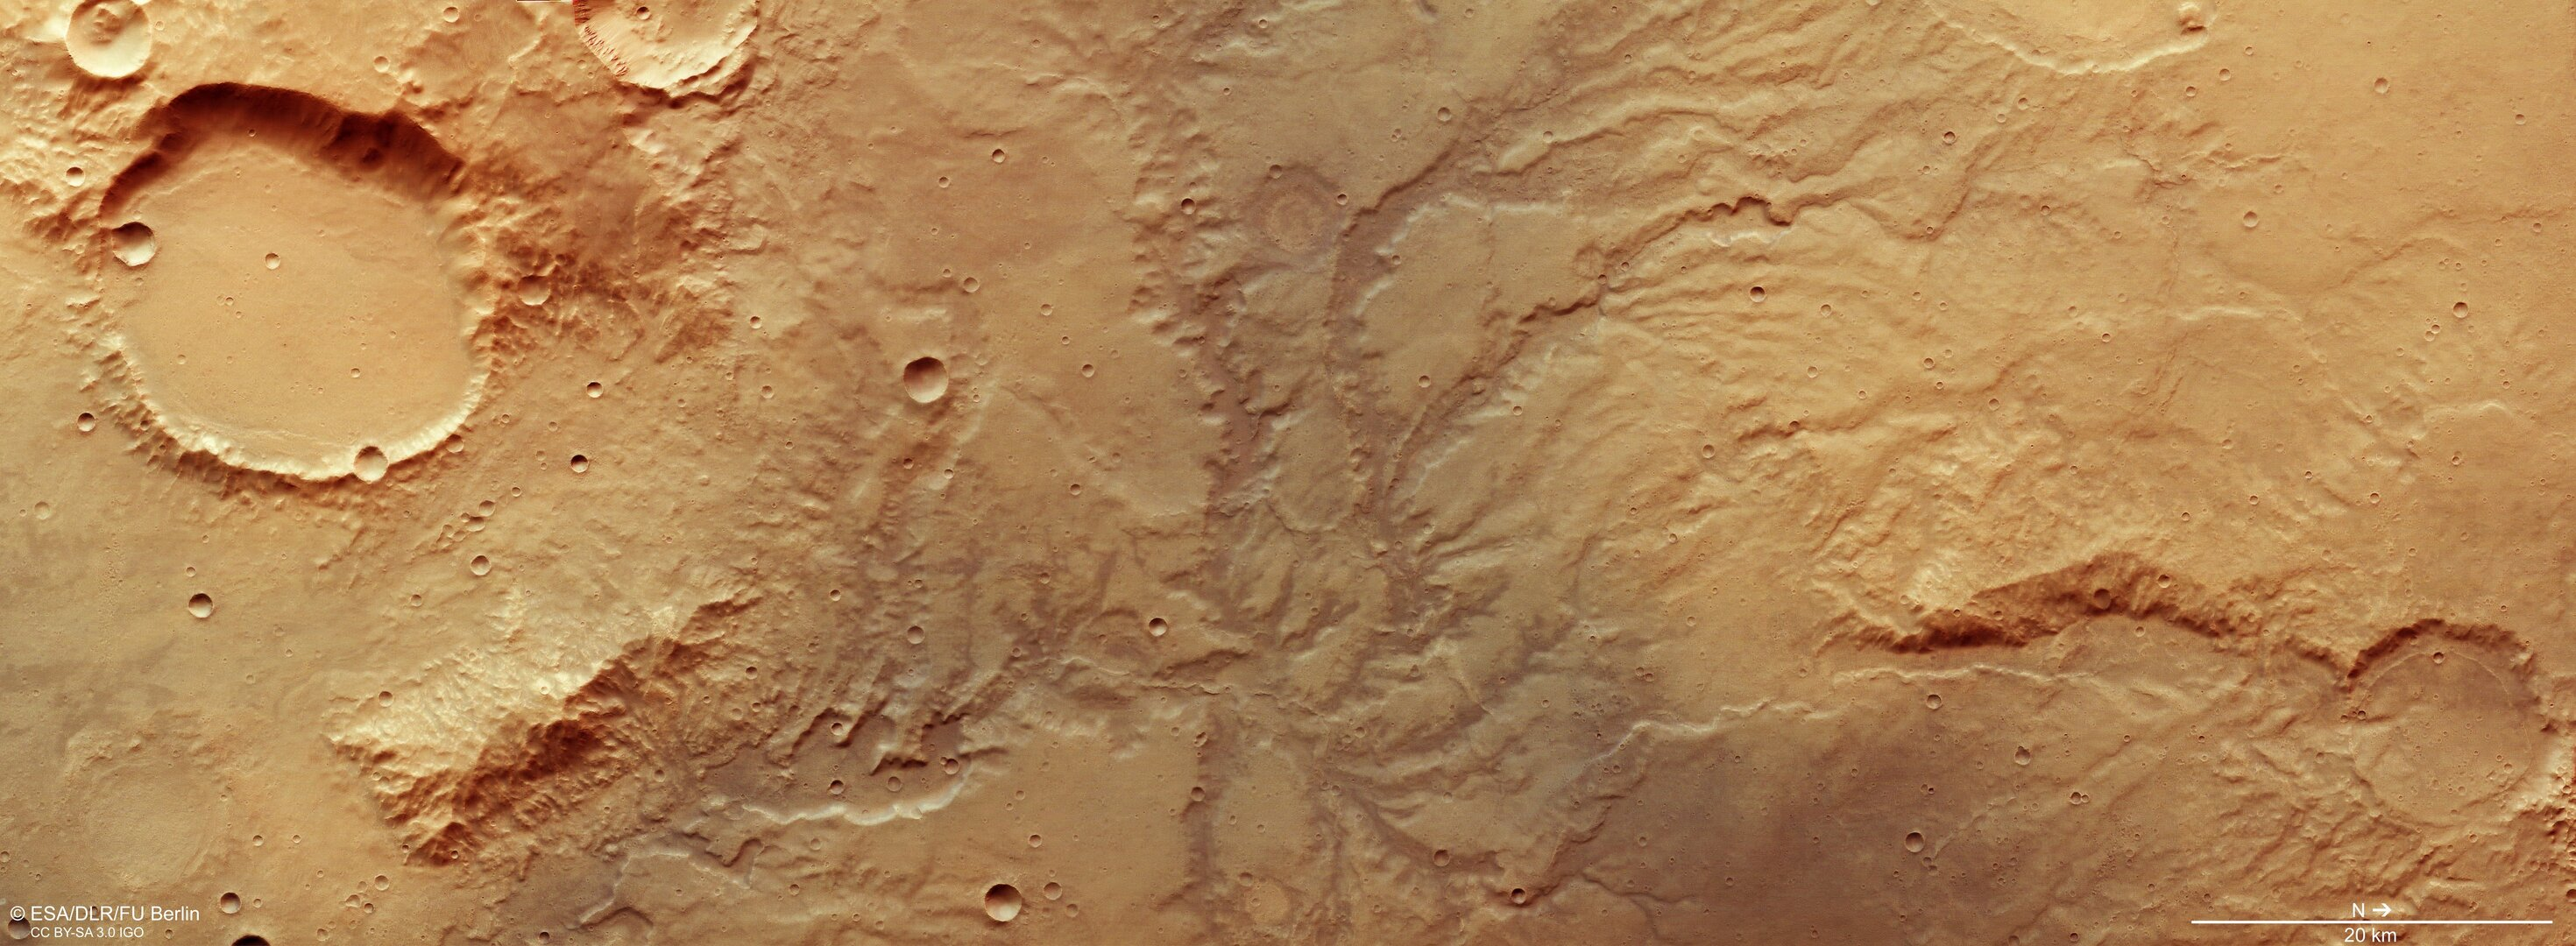 Dried out river valley network on Mars